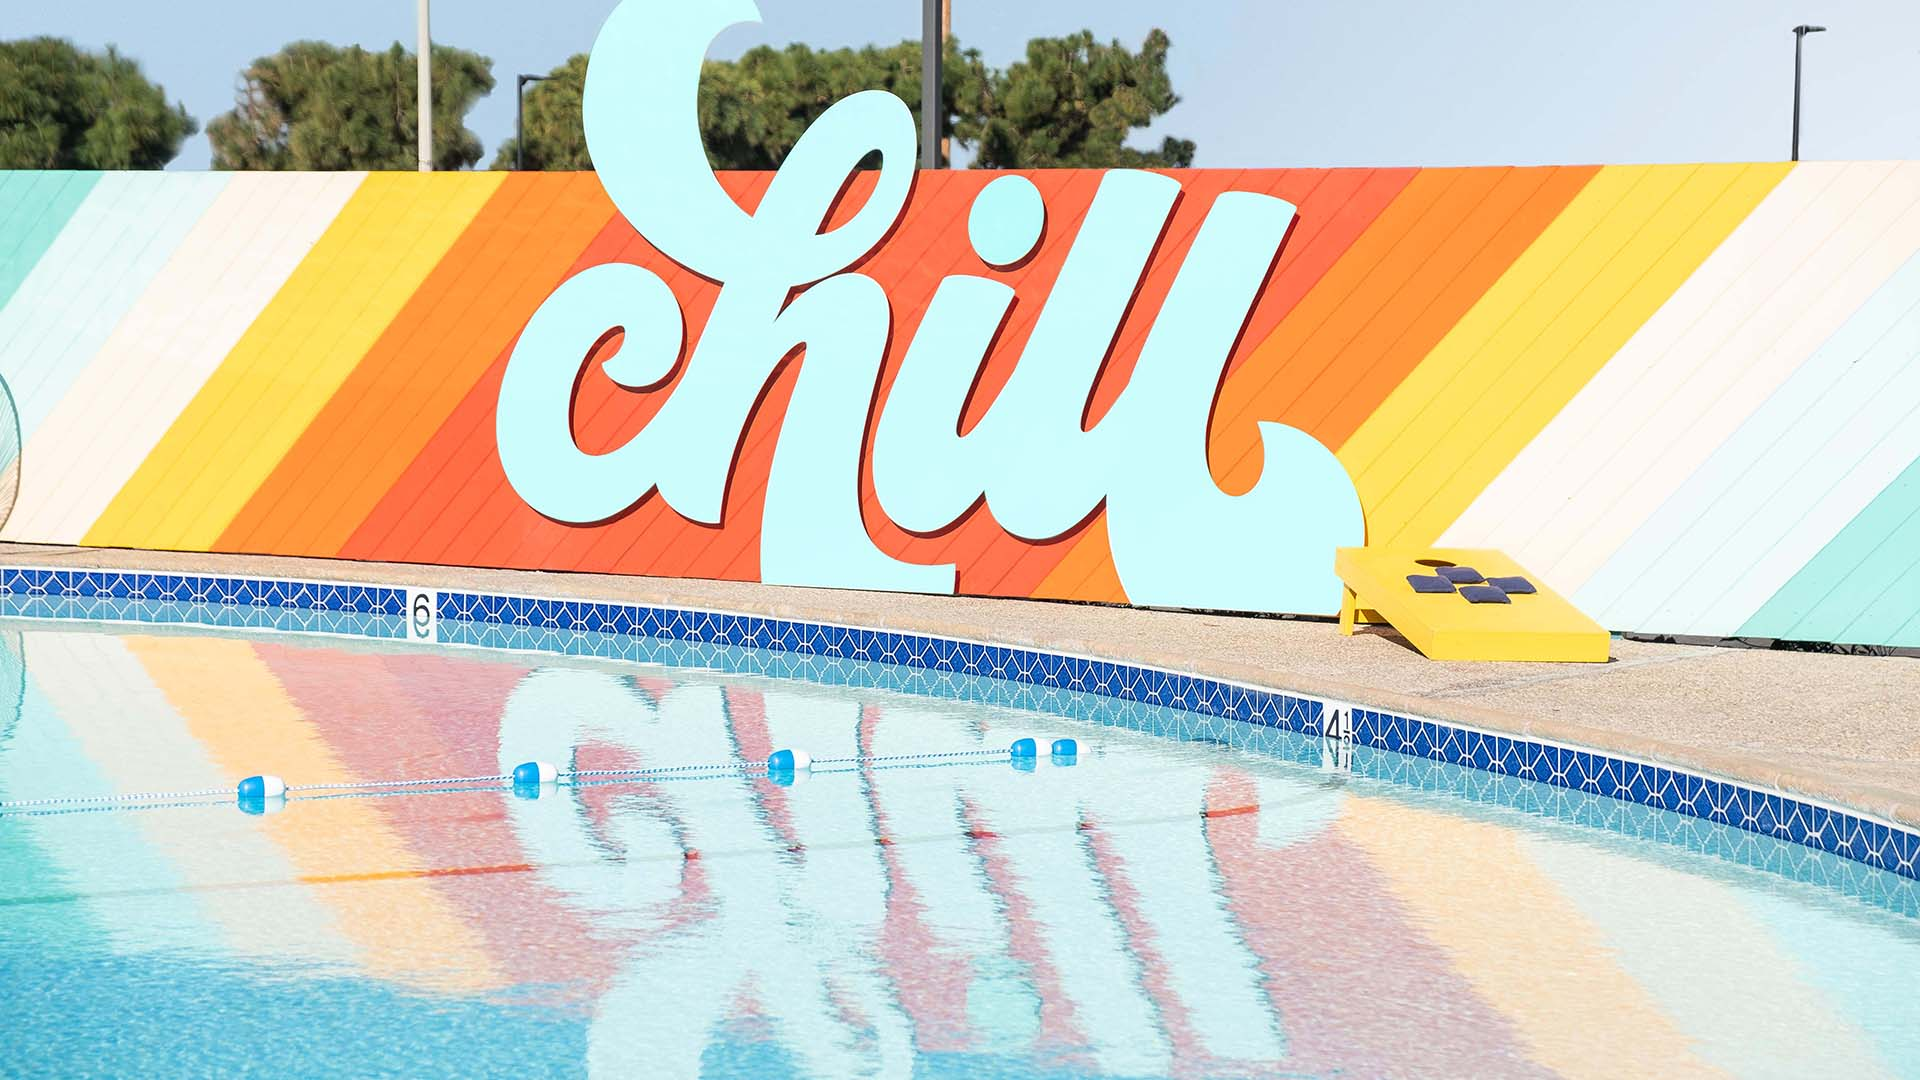 Colorful CHILL sign and its reflection on the pool